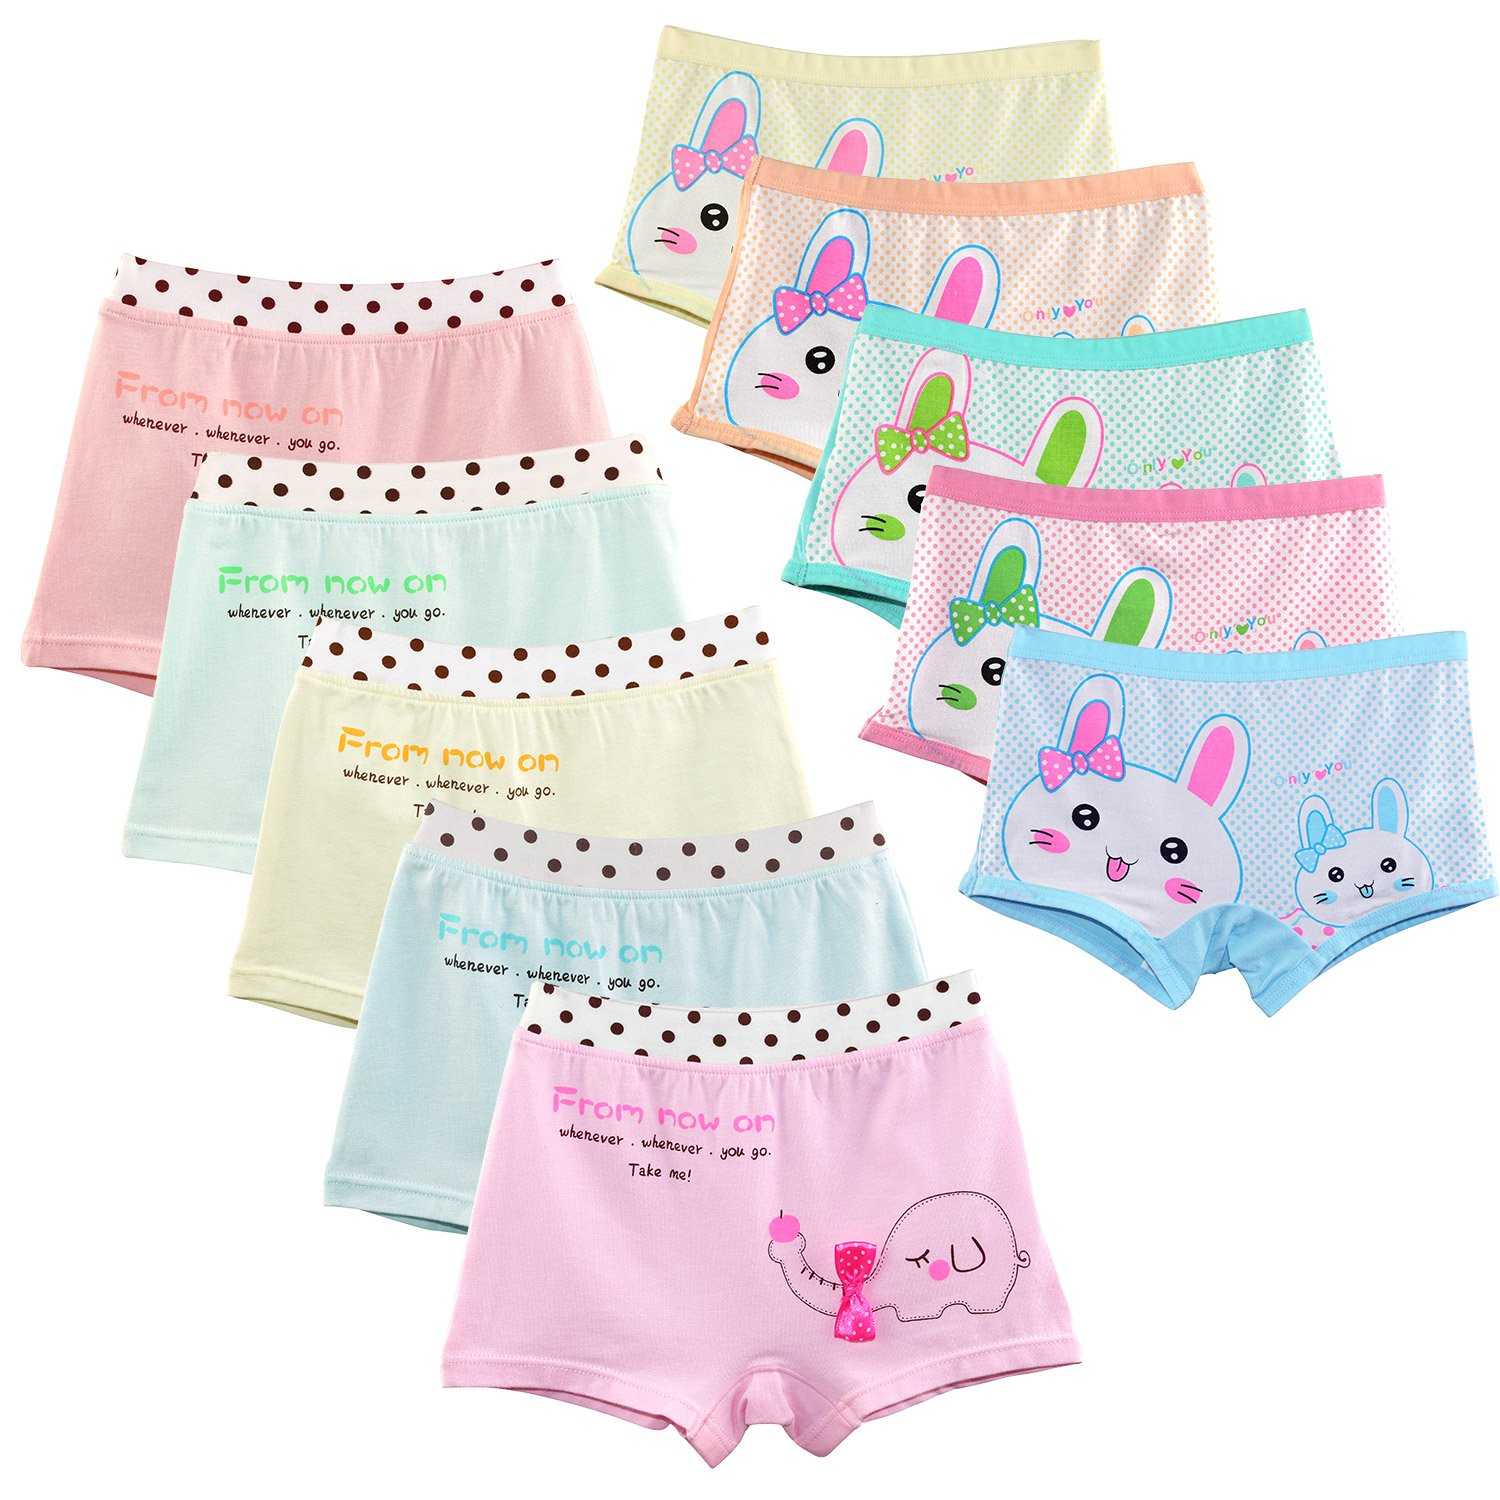 BOOPH Girls Boyshort Hipster Panties Kids Underwear 10 of Pack 3-10t by BOOPH (Image #1)